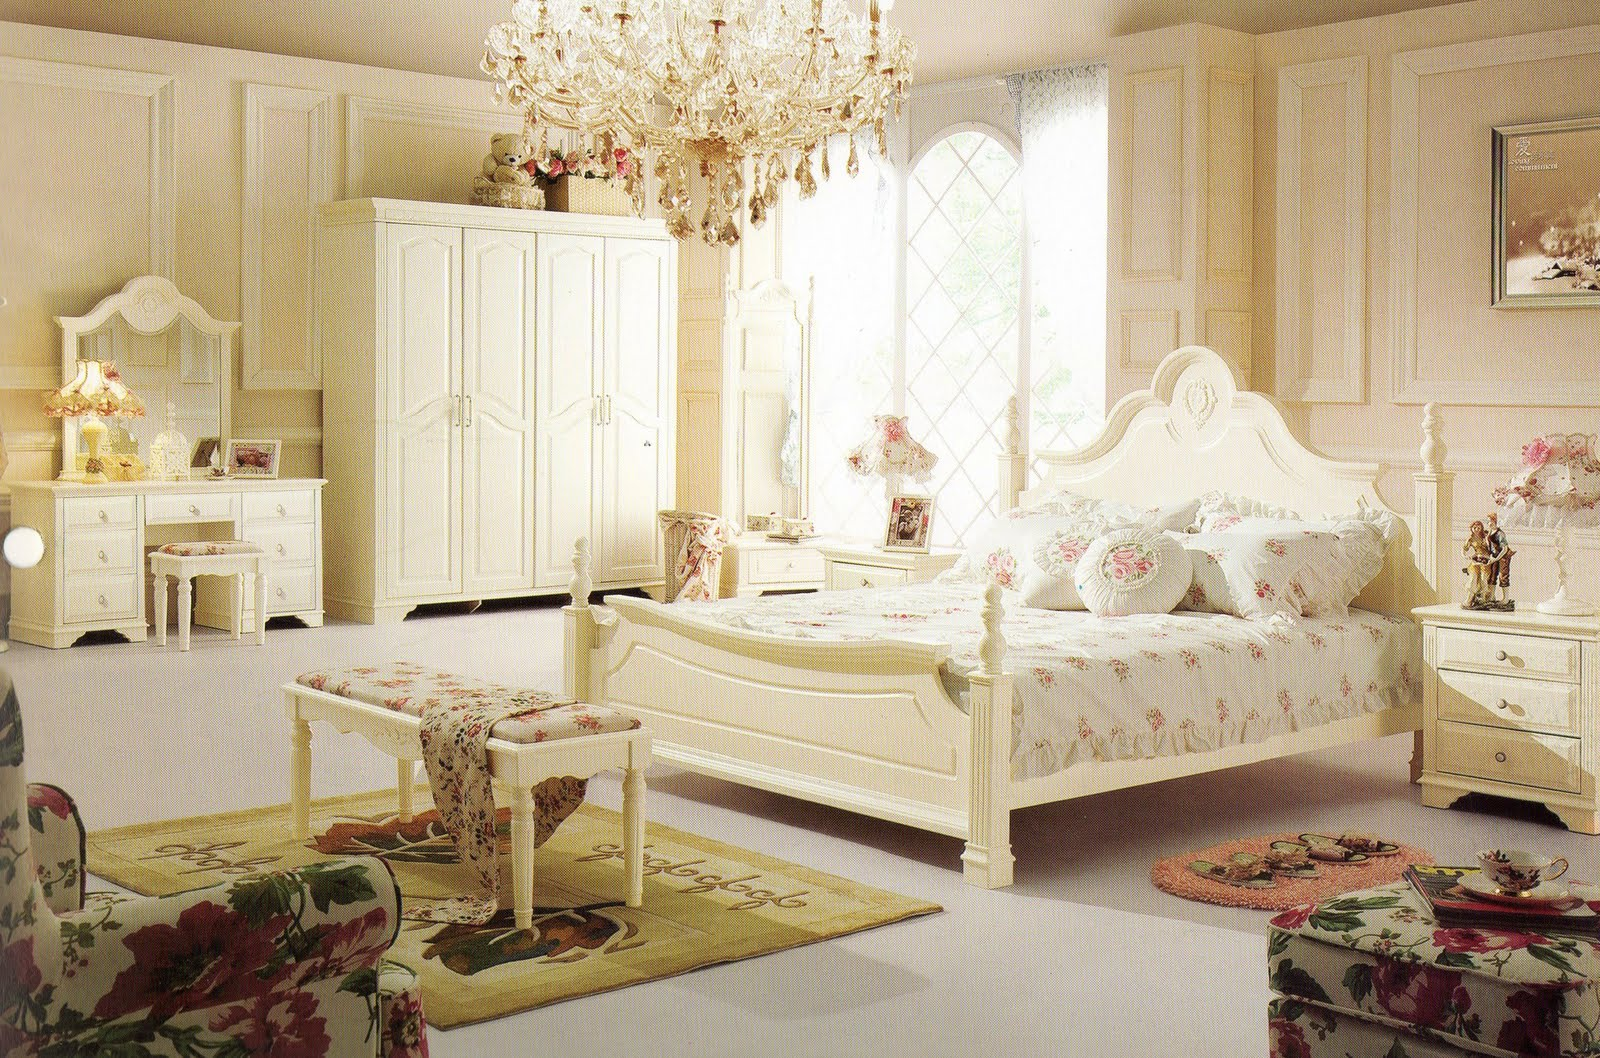 Fsd new arrival of our beautiful and elegant french style for Beautiful bed designs